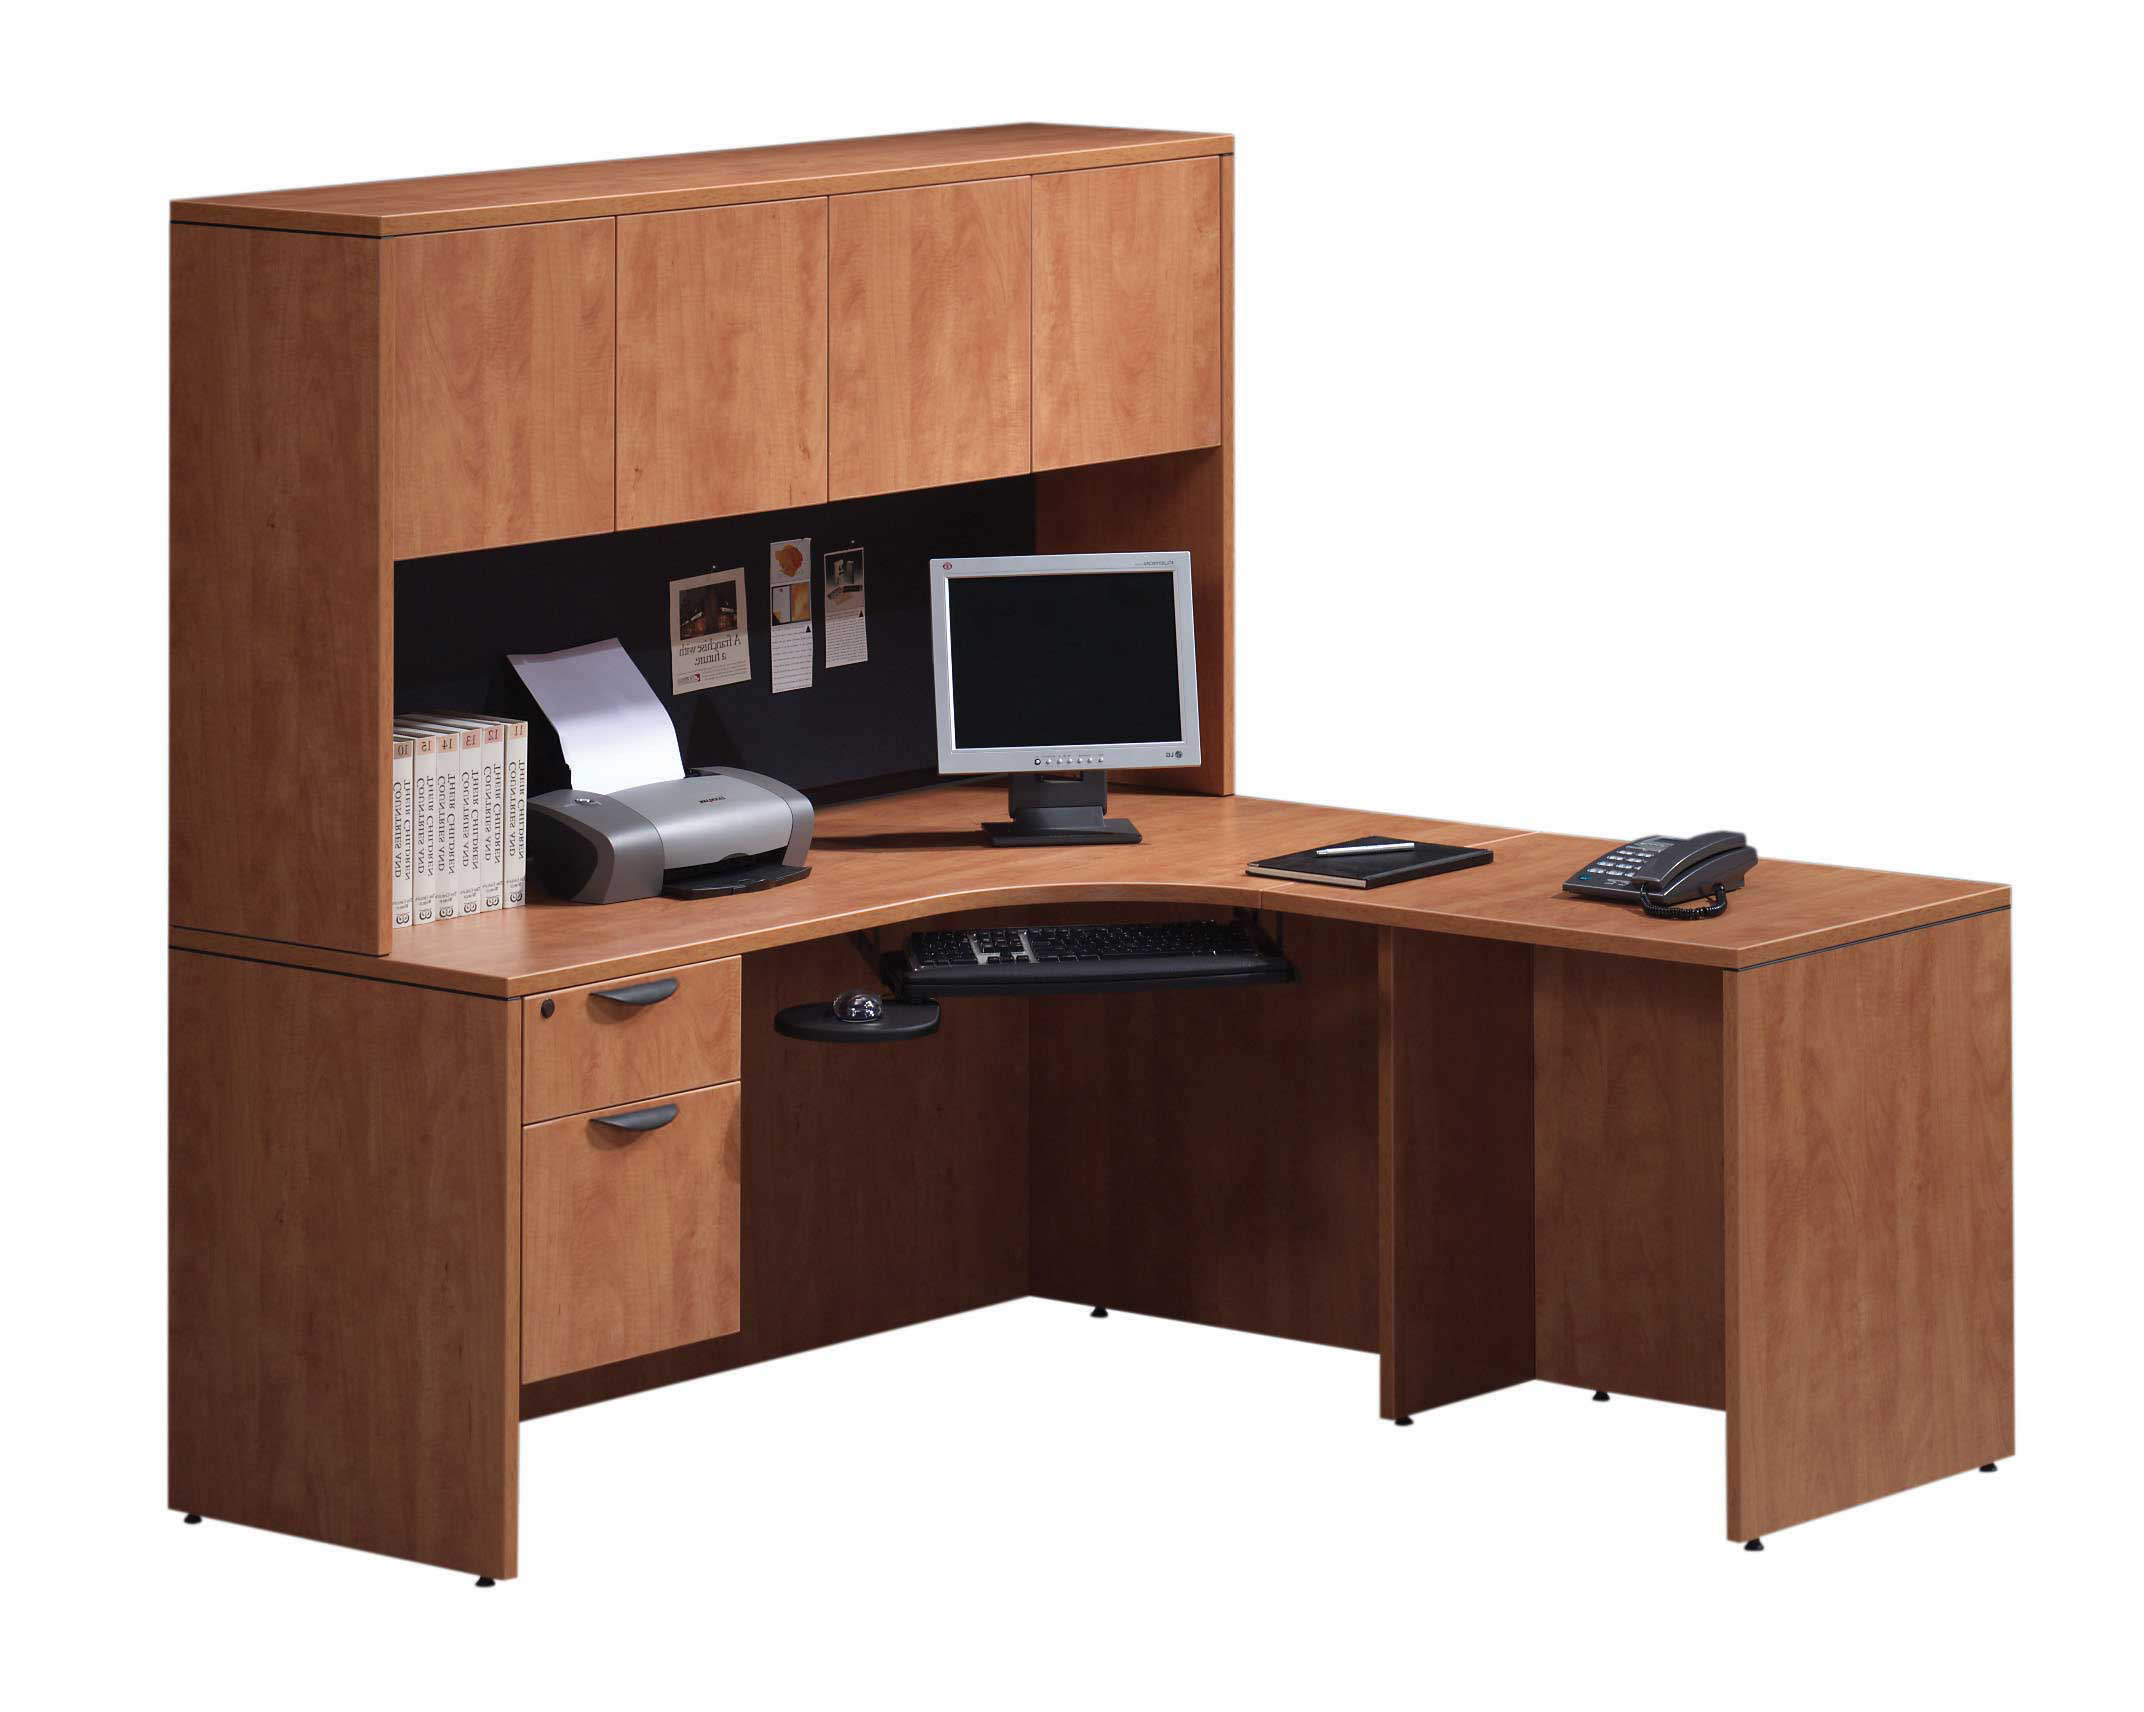 Superb img of Shape Desk w/Hutch with #91593A color and 2144x1712 pixels